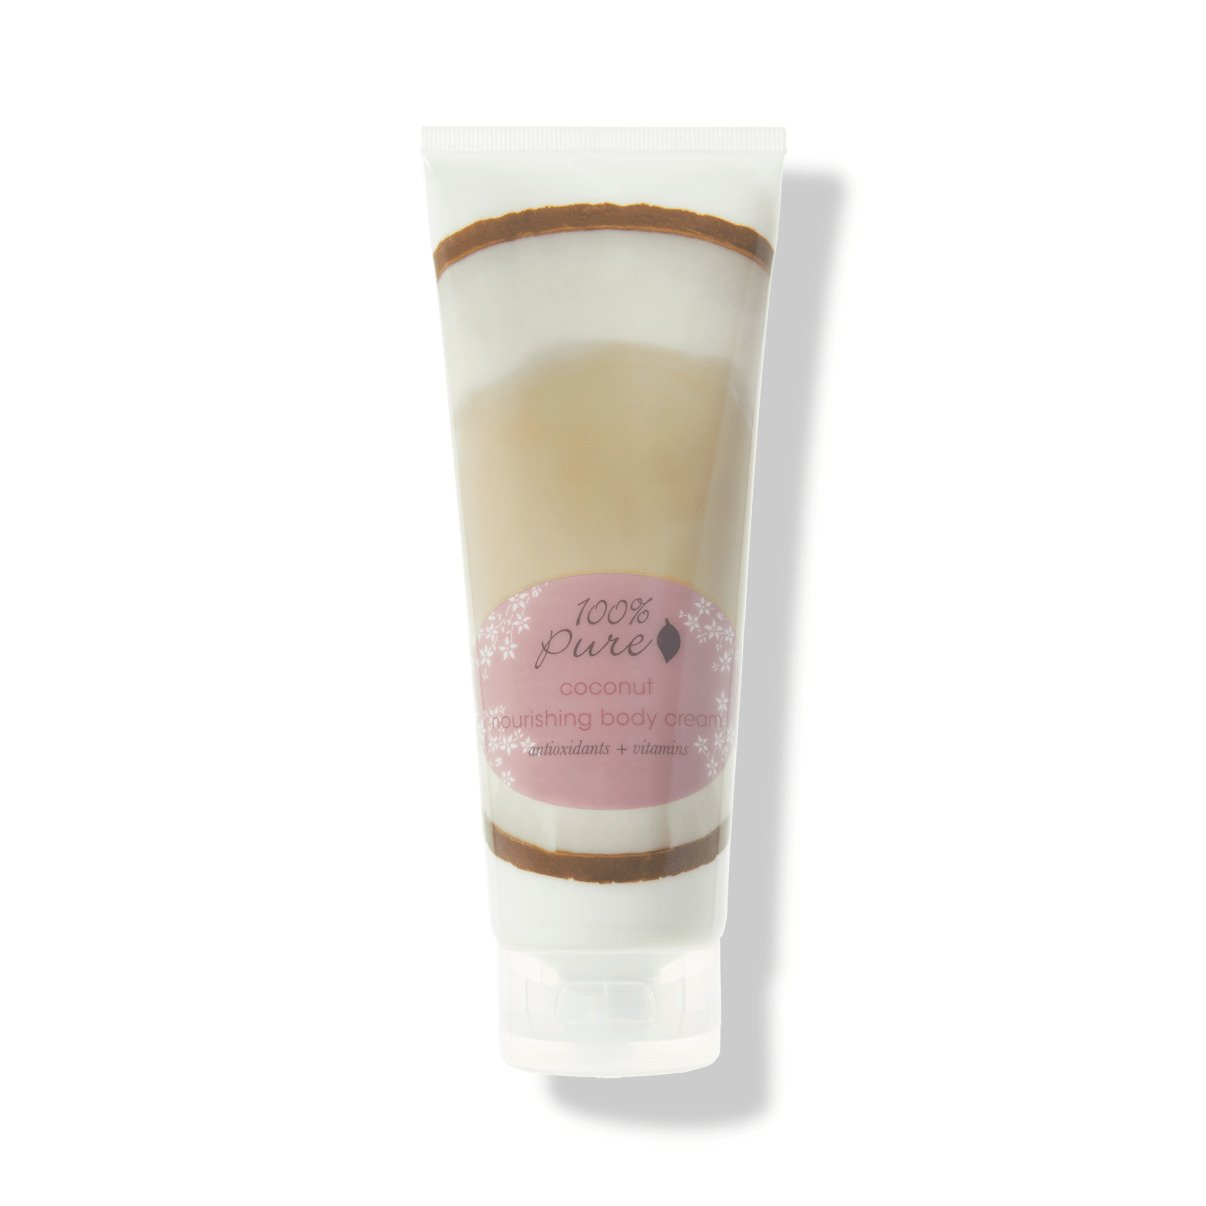 Coconut Nourishing Body Cream from 100% Pure